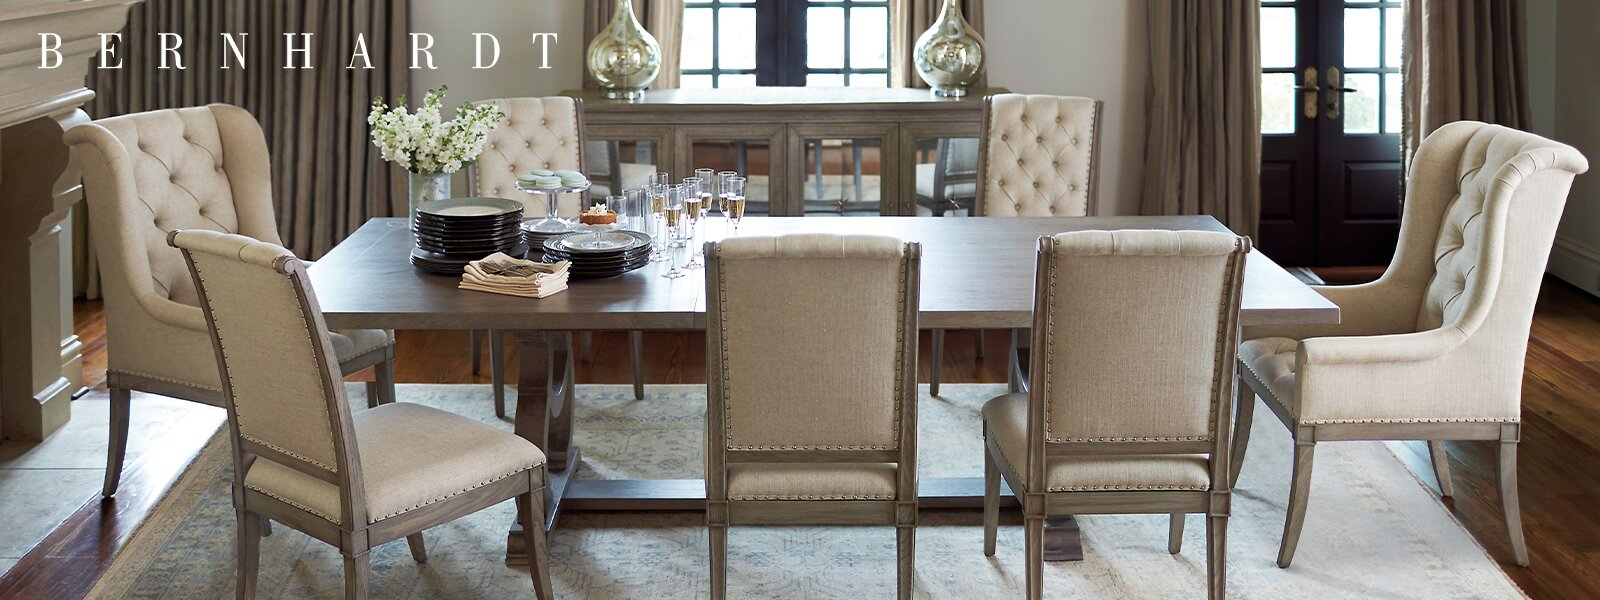 Bernhardt | Wayfair Within Current Tarleton 5 Piece Dining Sets (View 17 of 20)